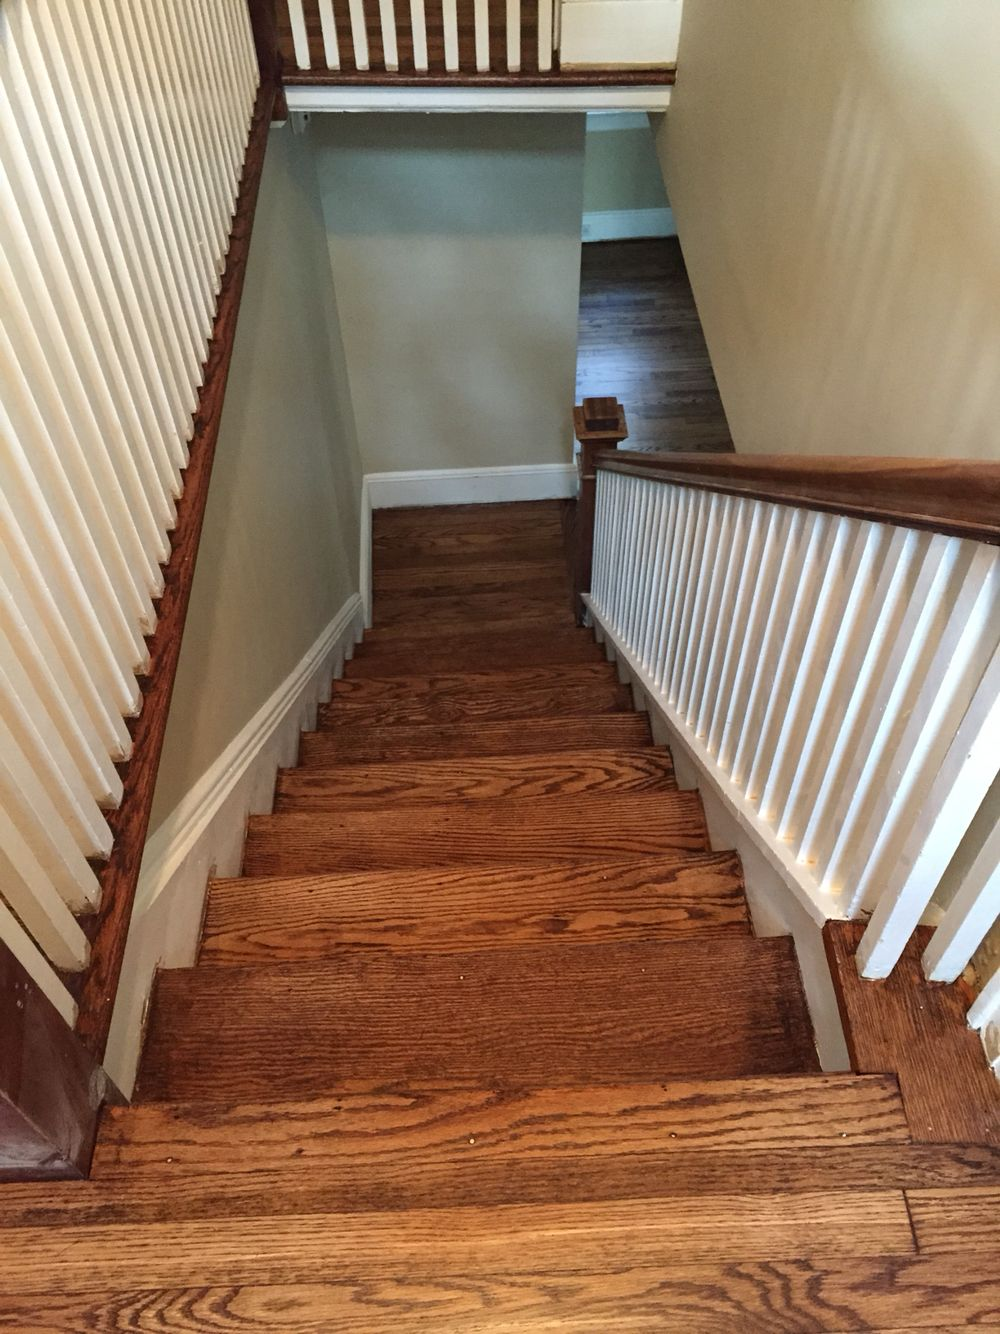 Wood by sanding the floors minwax floor finishes minwax floor finishes - Red Oak Minwax Provincial Stain After Gloss And Satin Finish Floor